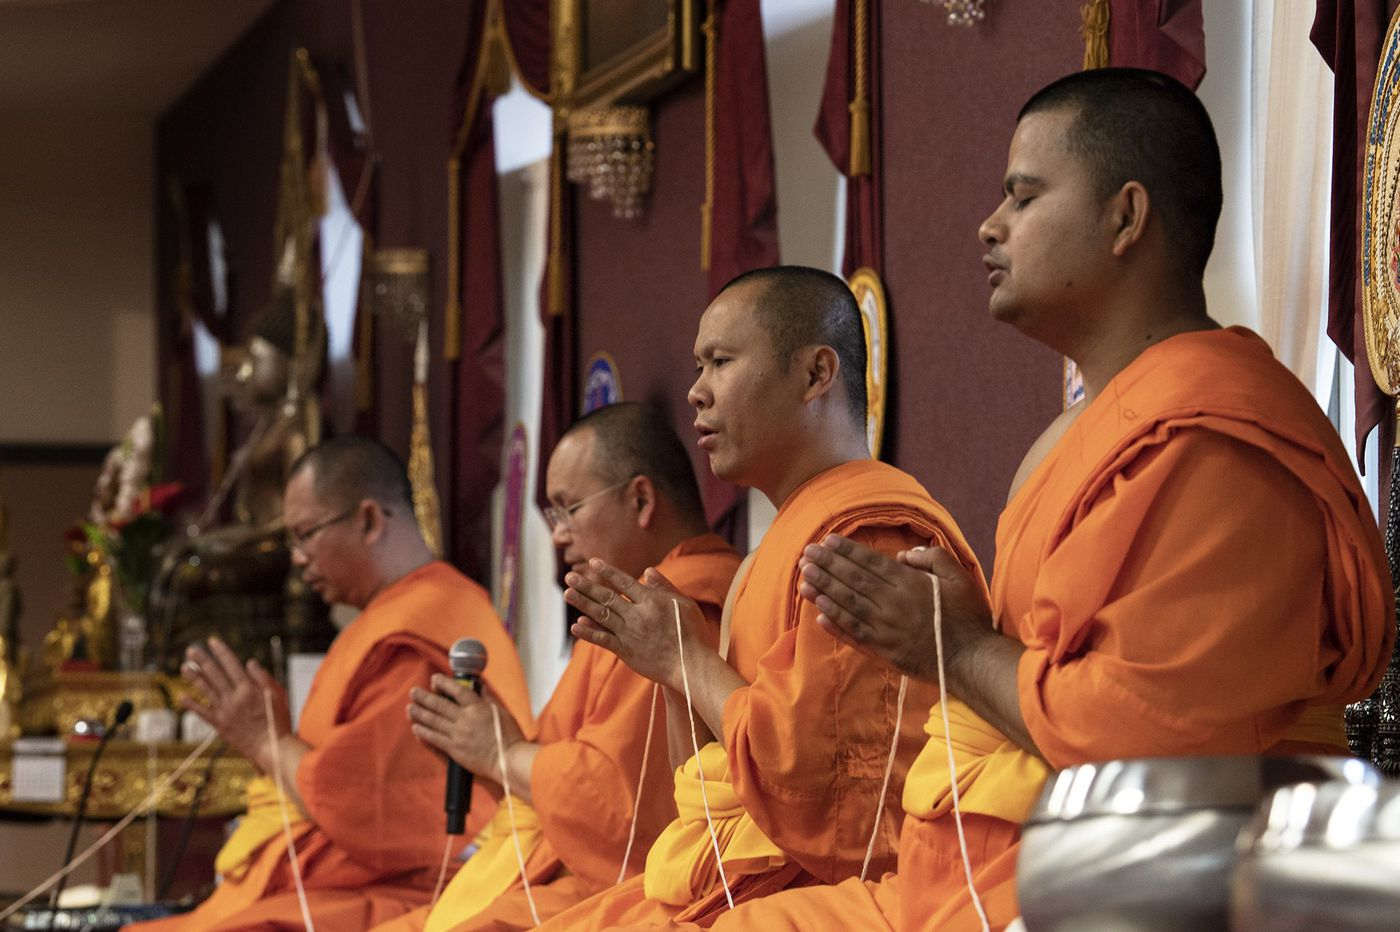 'They welcome people.' Inside a Buddhist temple in Bucks County.